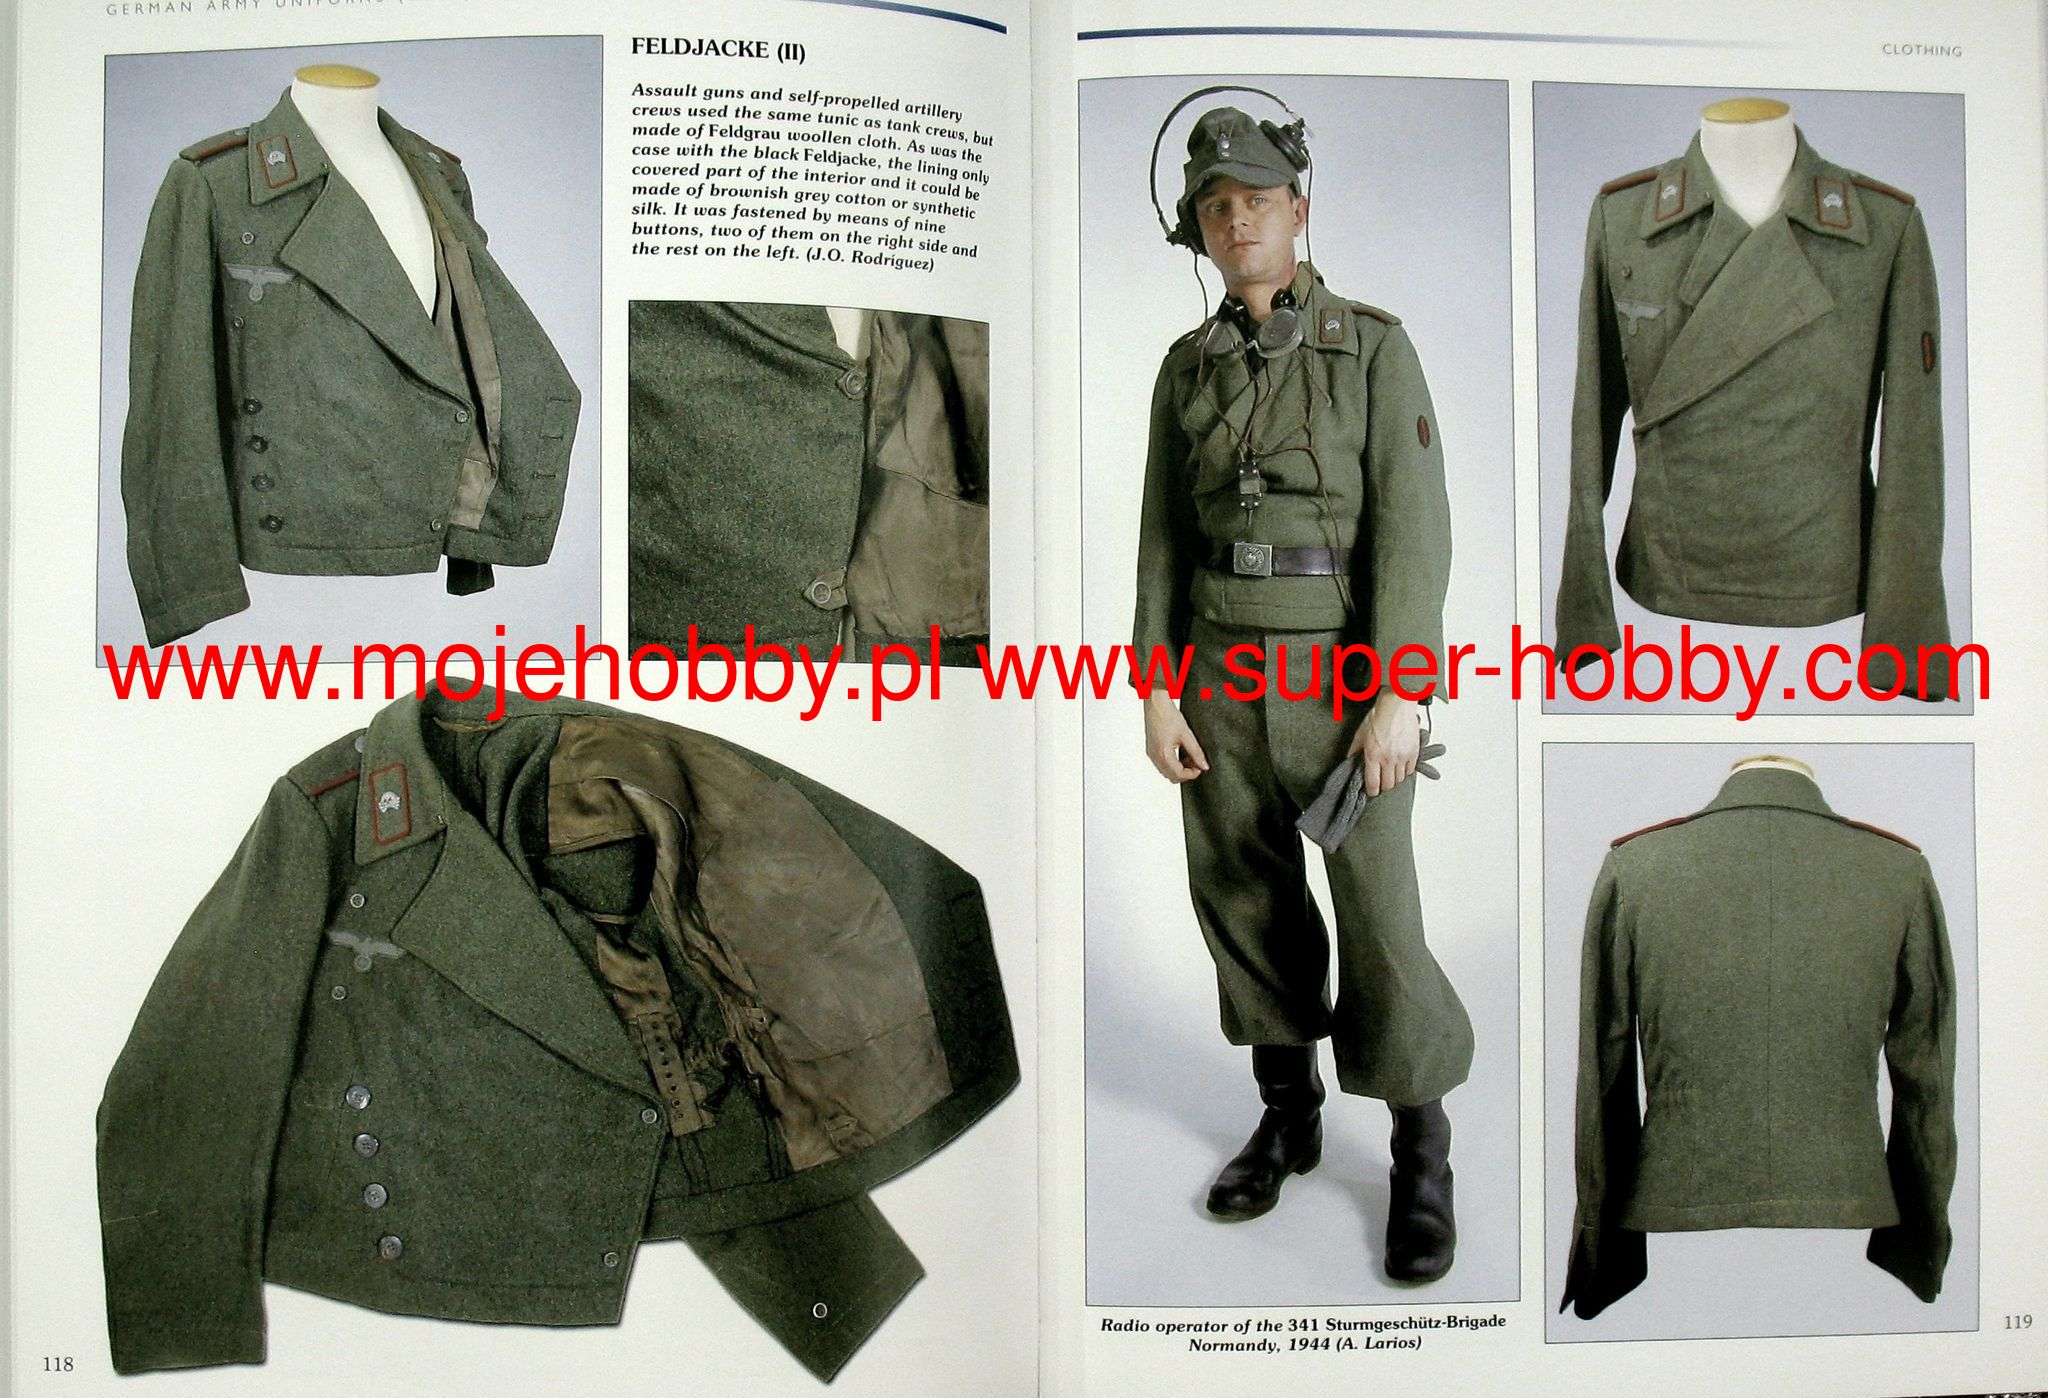 The uniform is made of woolly woolen cloth of olive color with two red edges